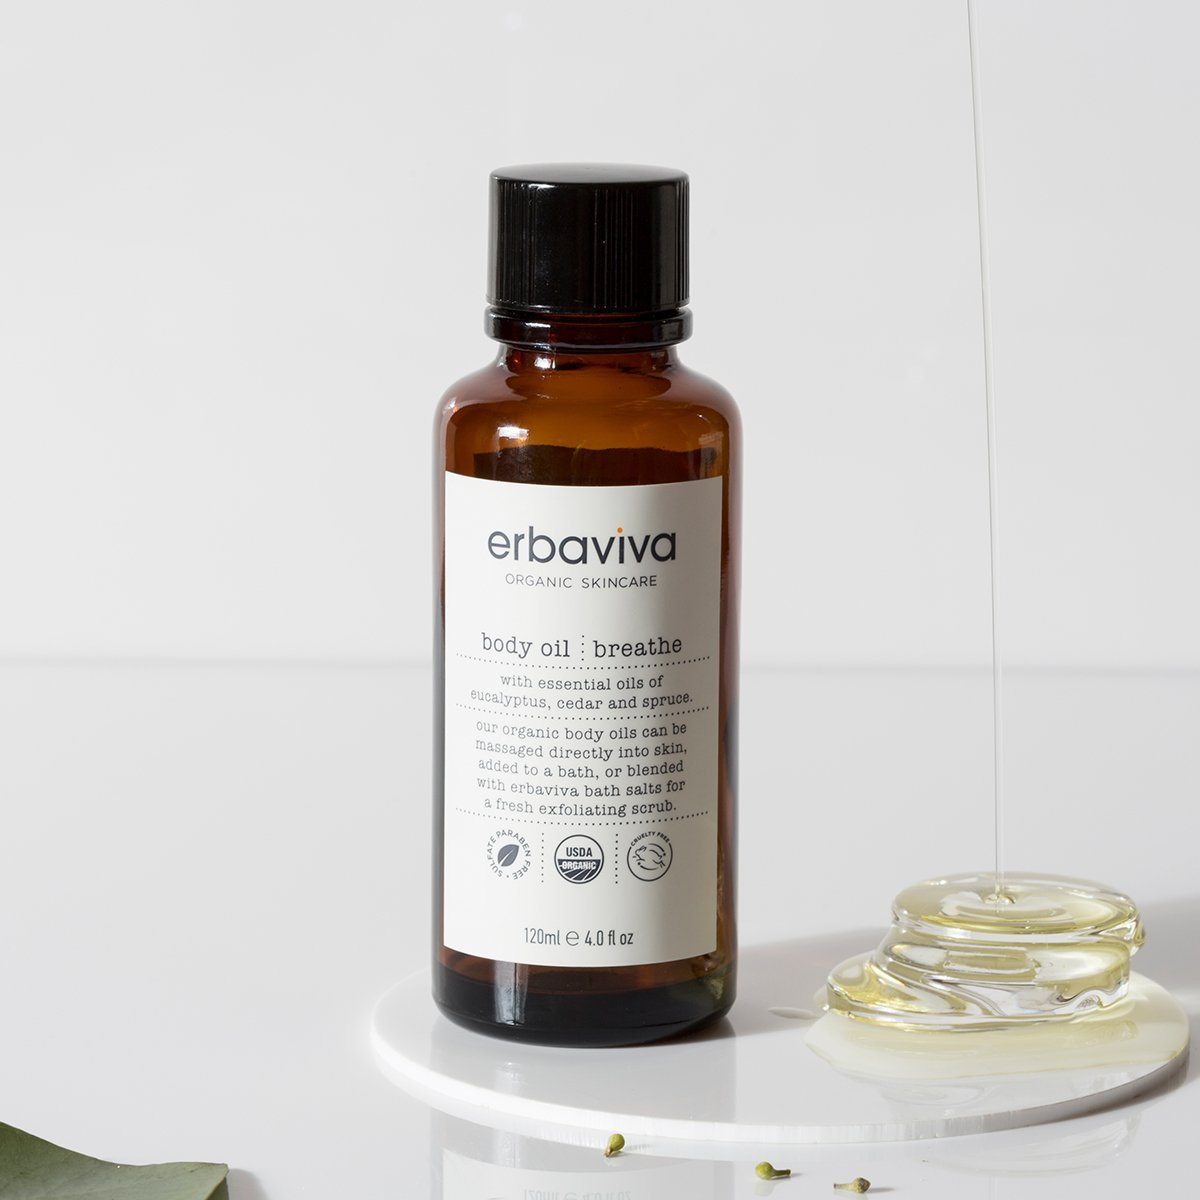 Erbaviva Body Oil